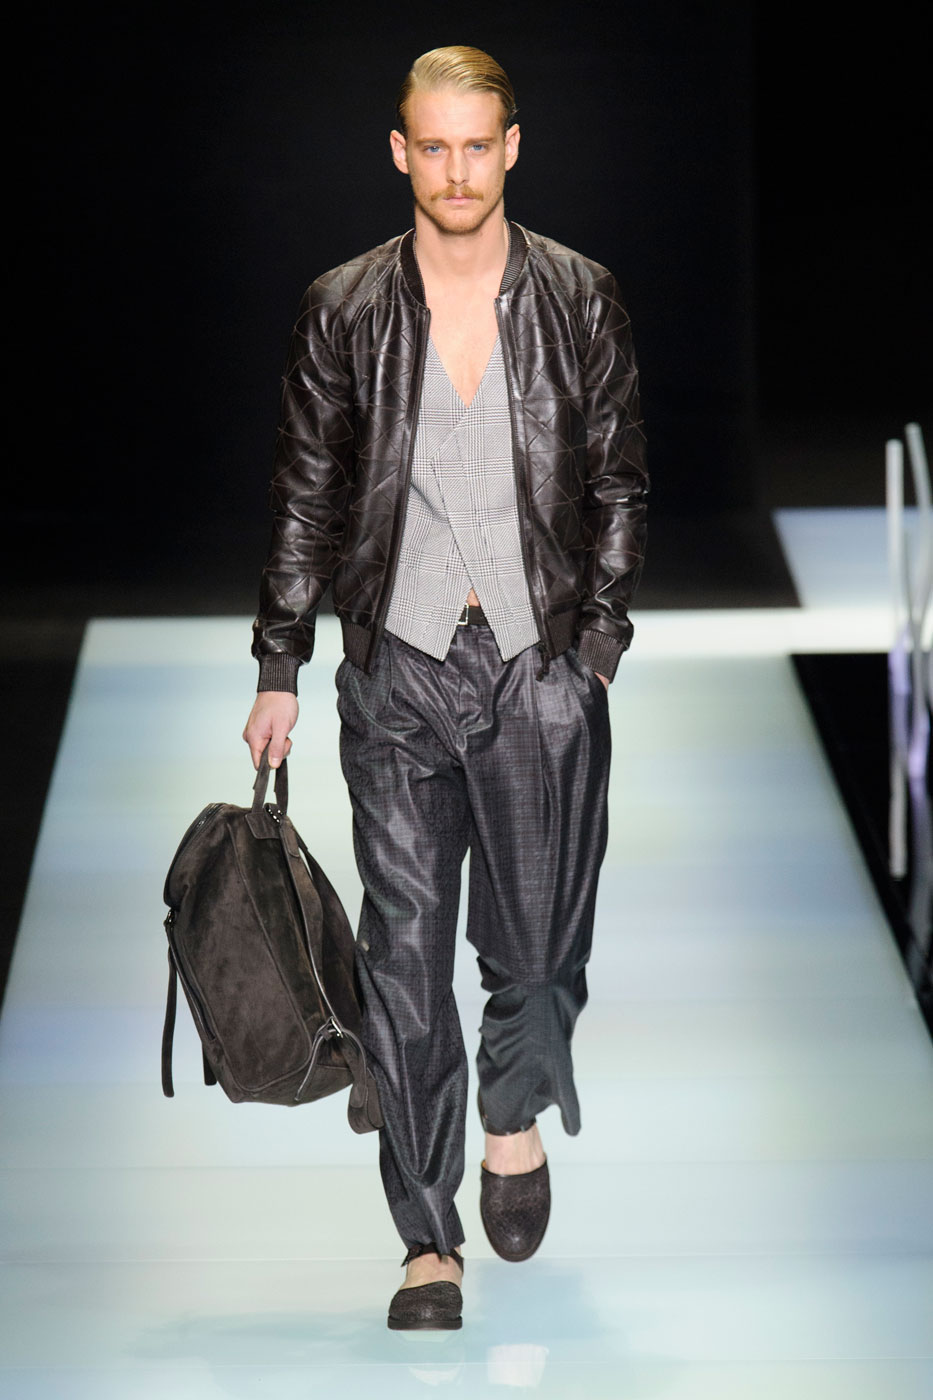 Armani fashion for men 91